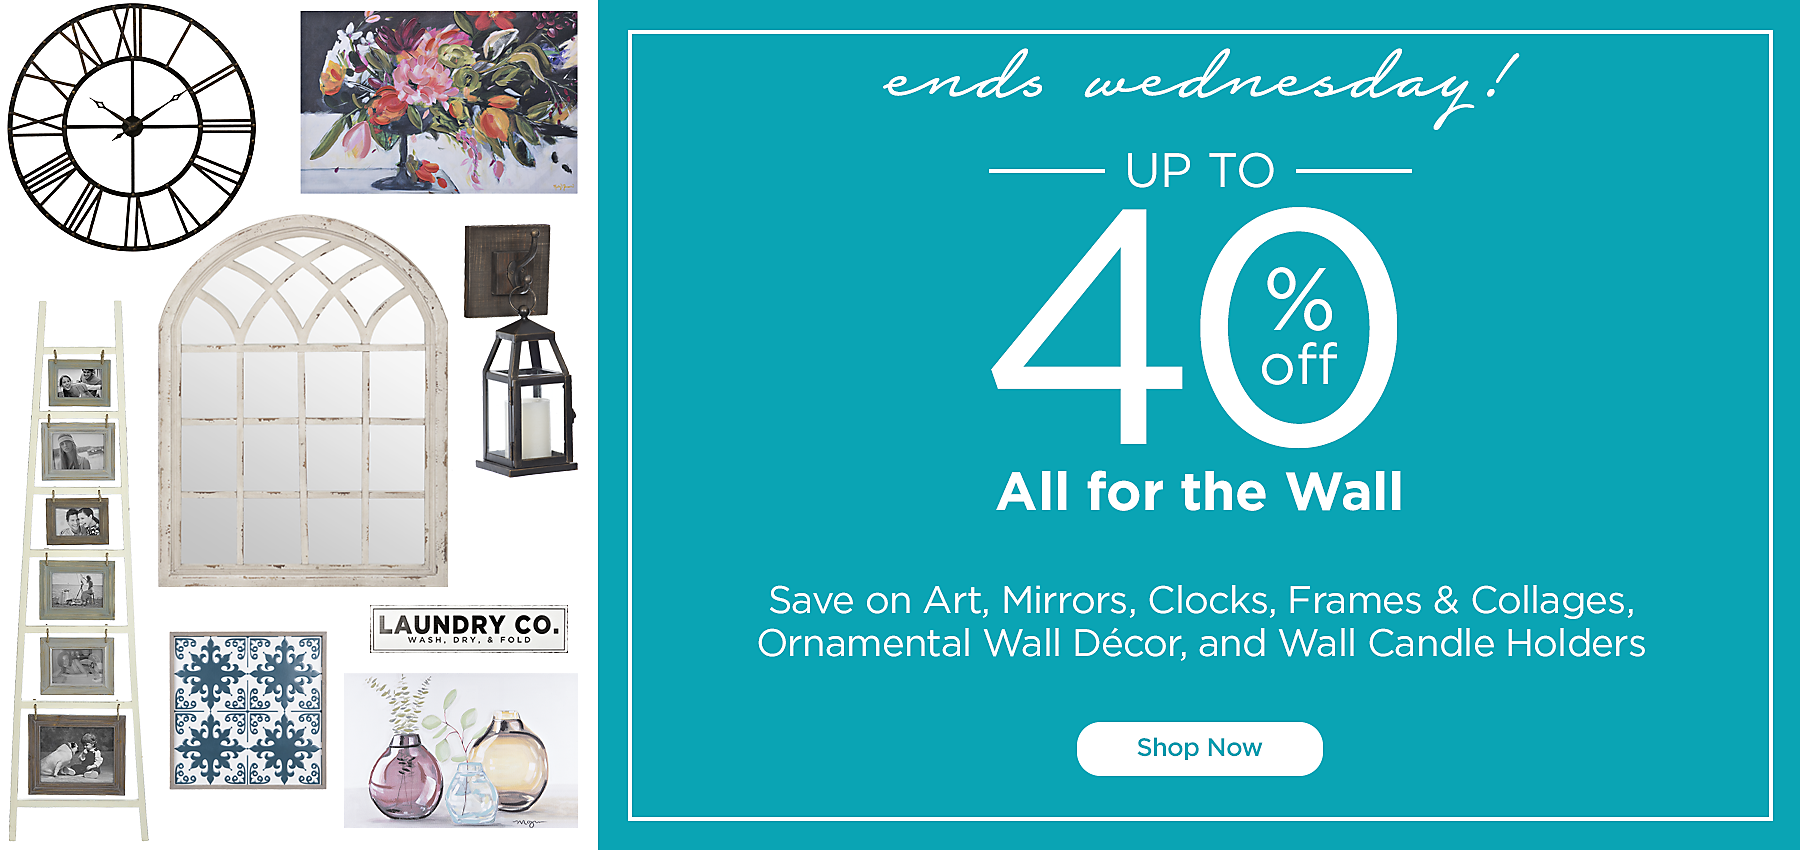 Home Decor Wall Furniture Unique Gifts